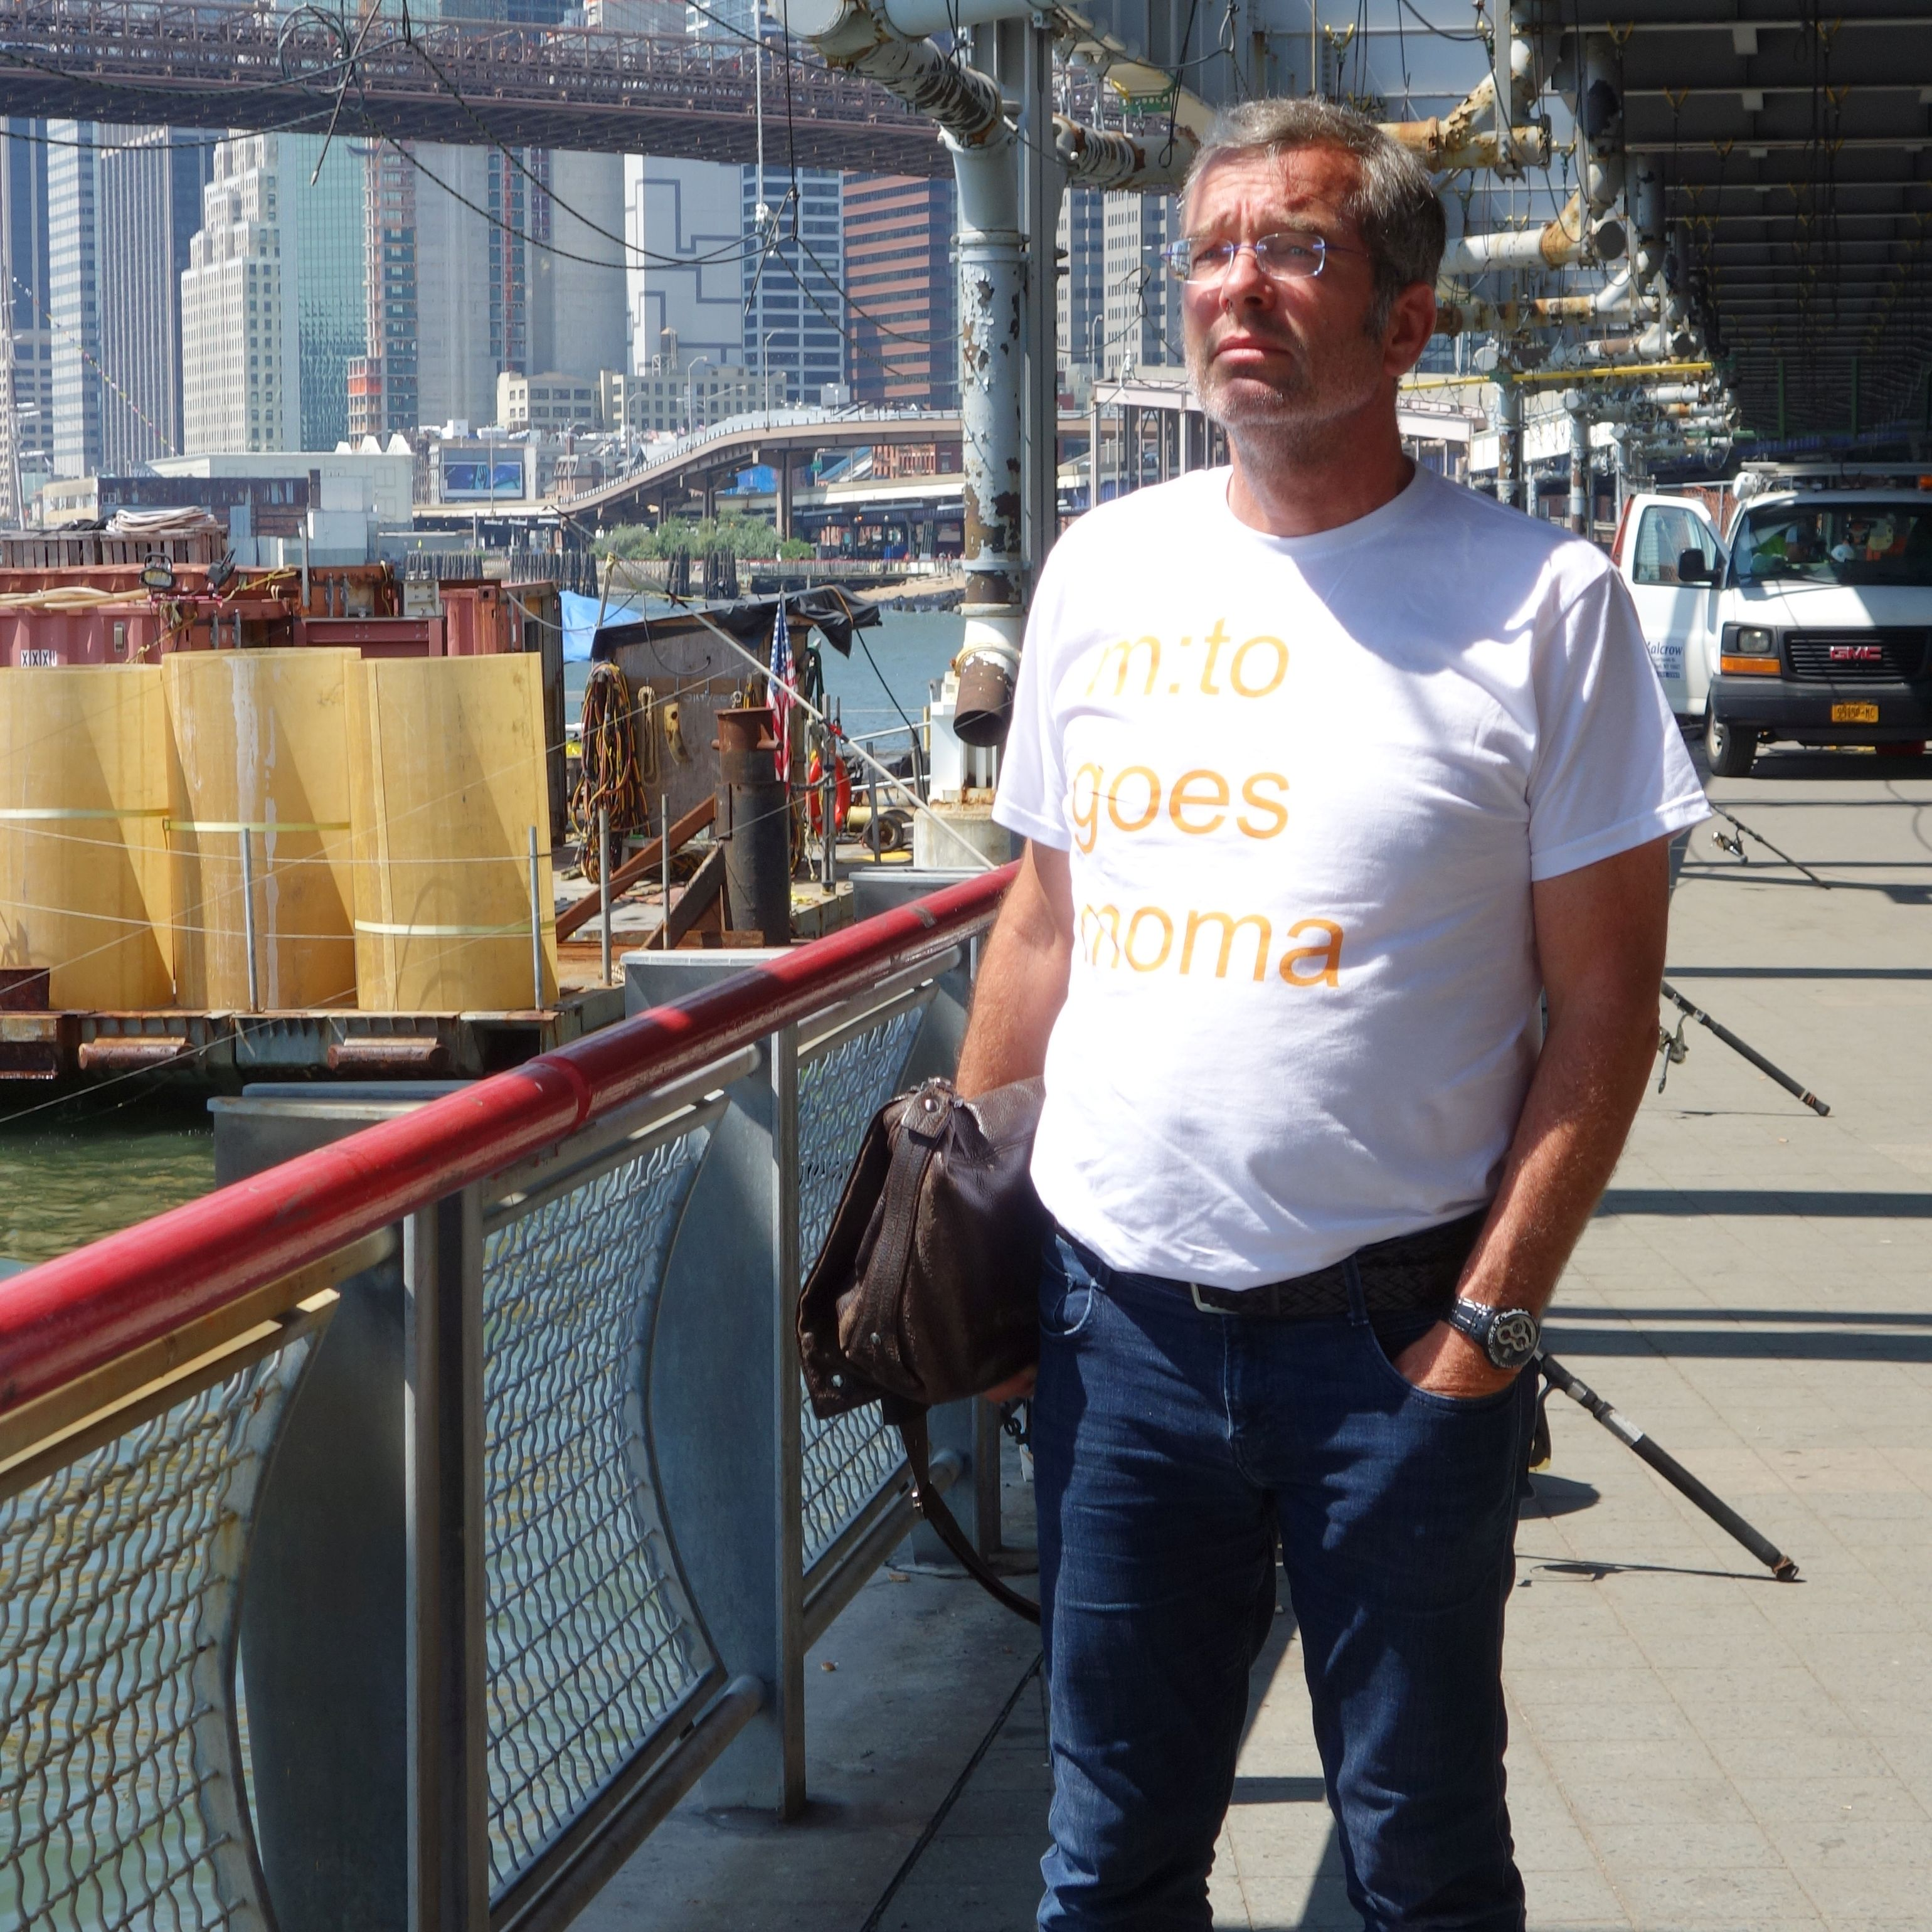 christof at fdr drive